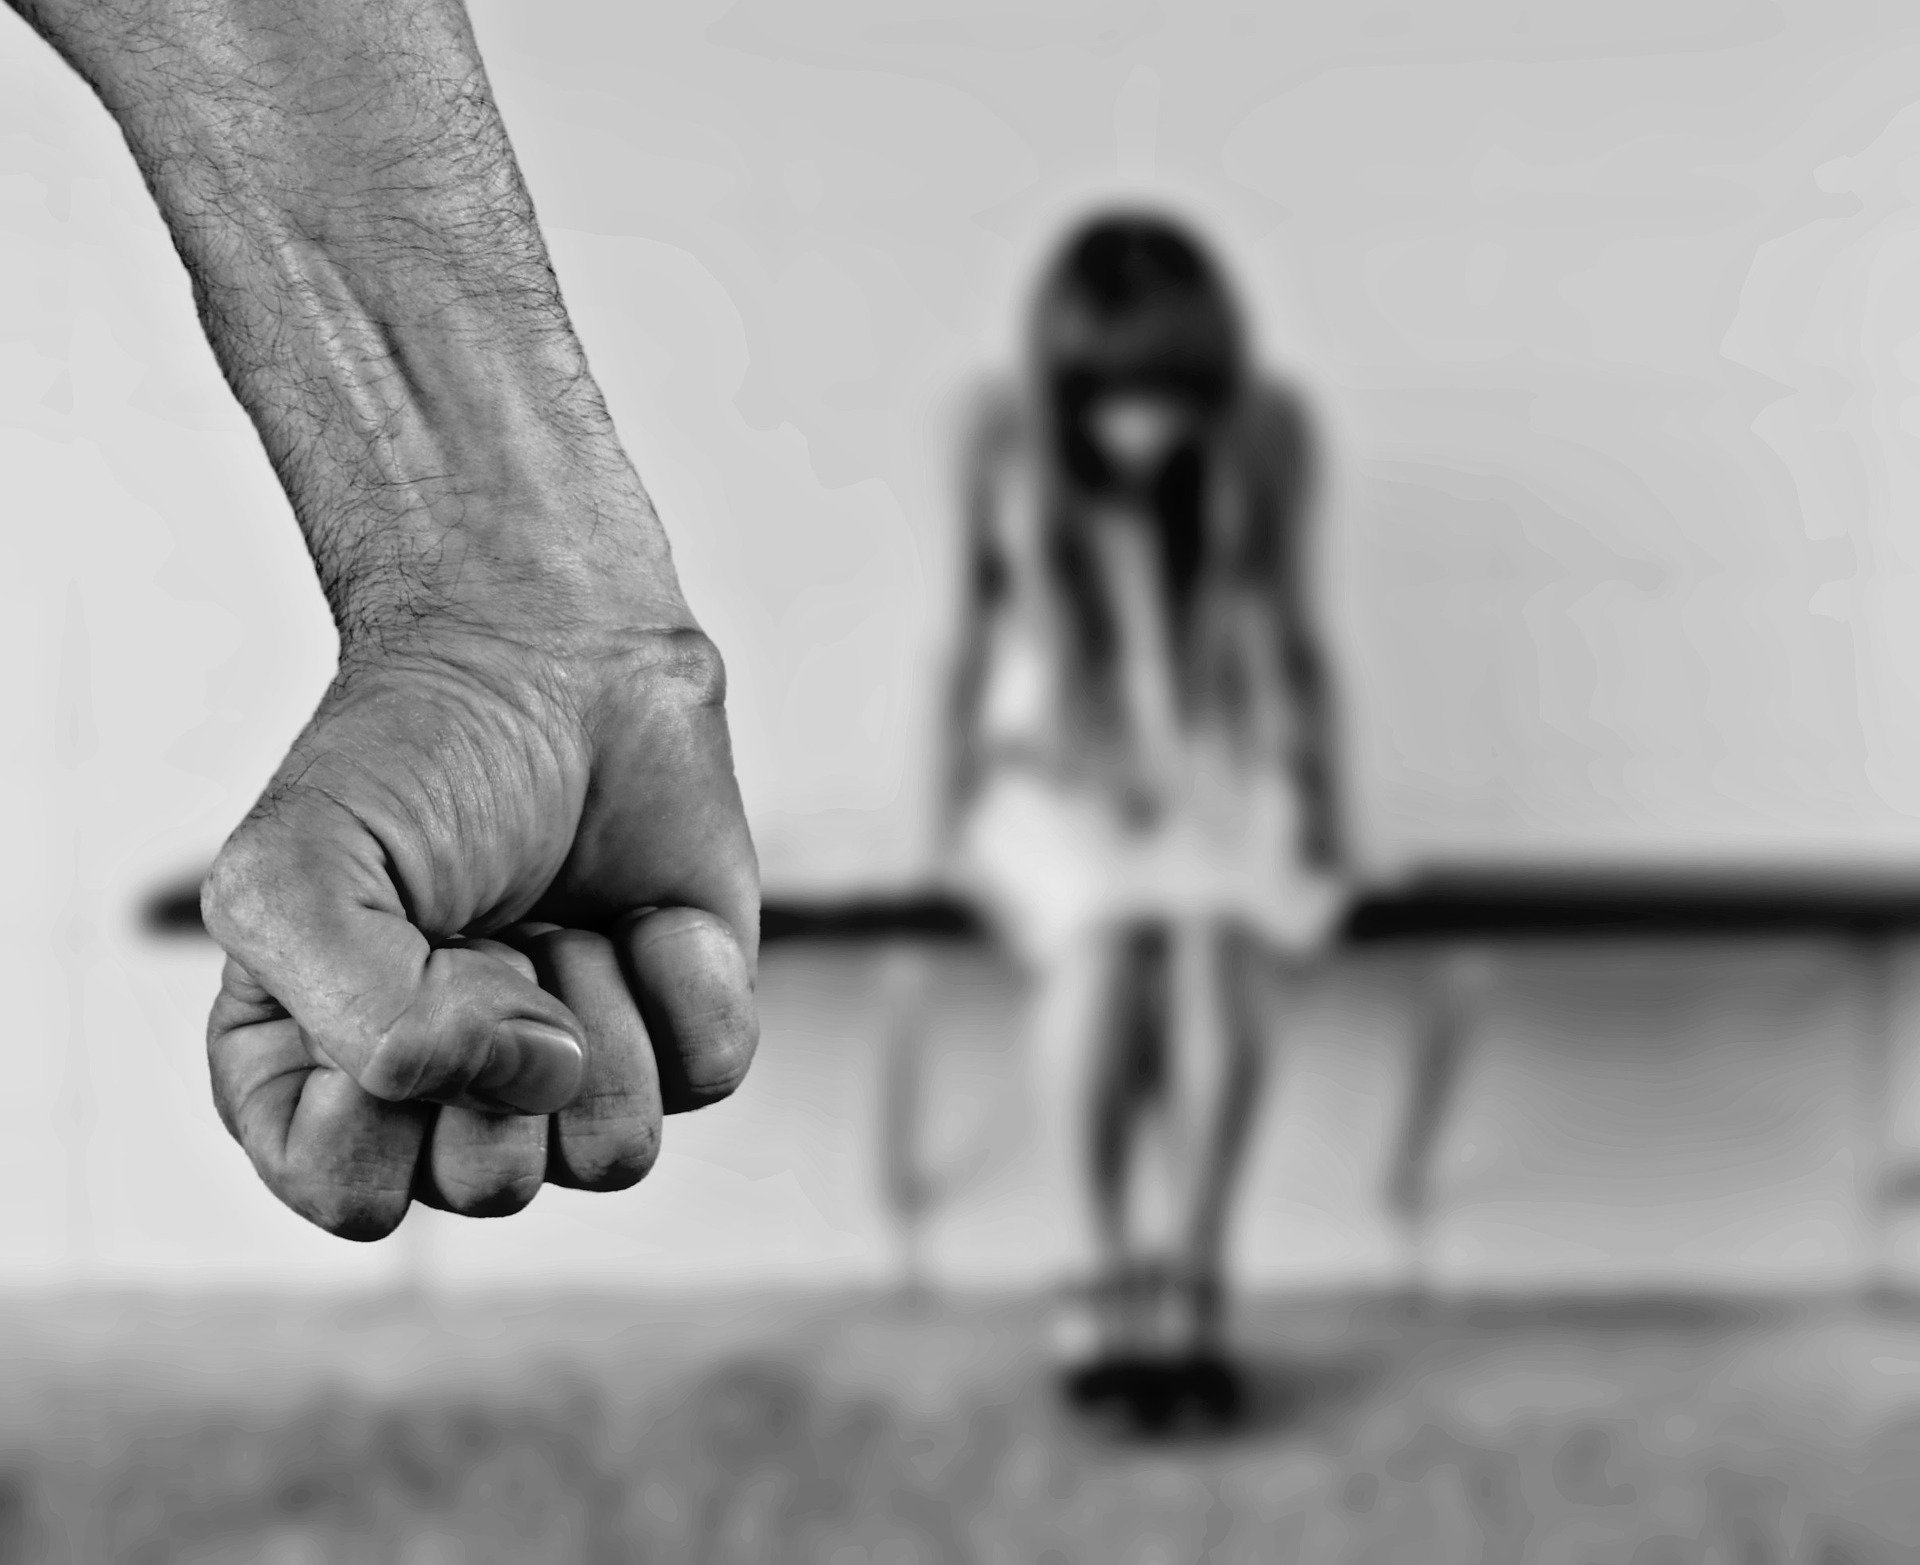 Sexual abuse as a child changes the body's biochemical response to stress